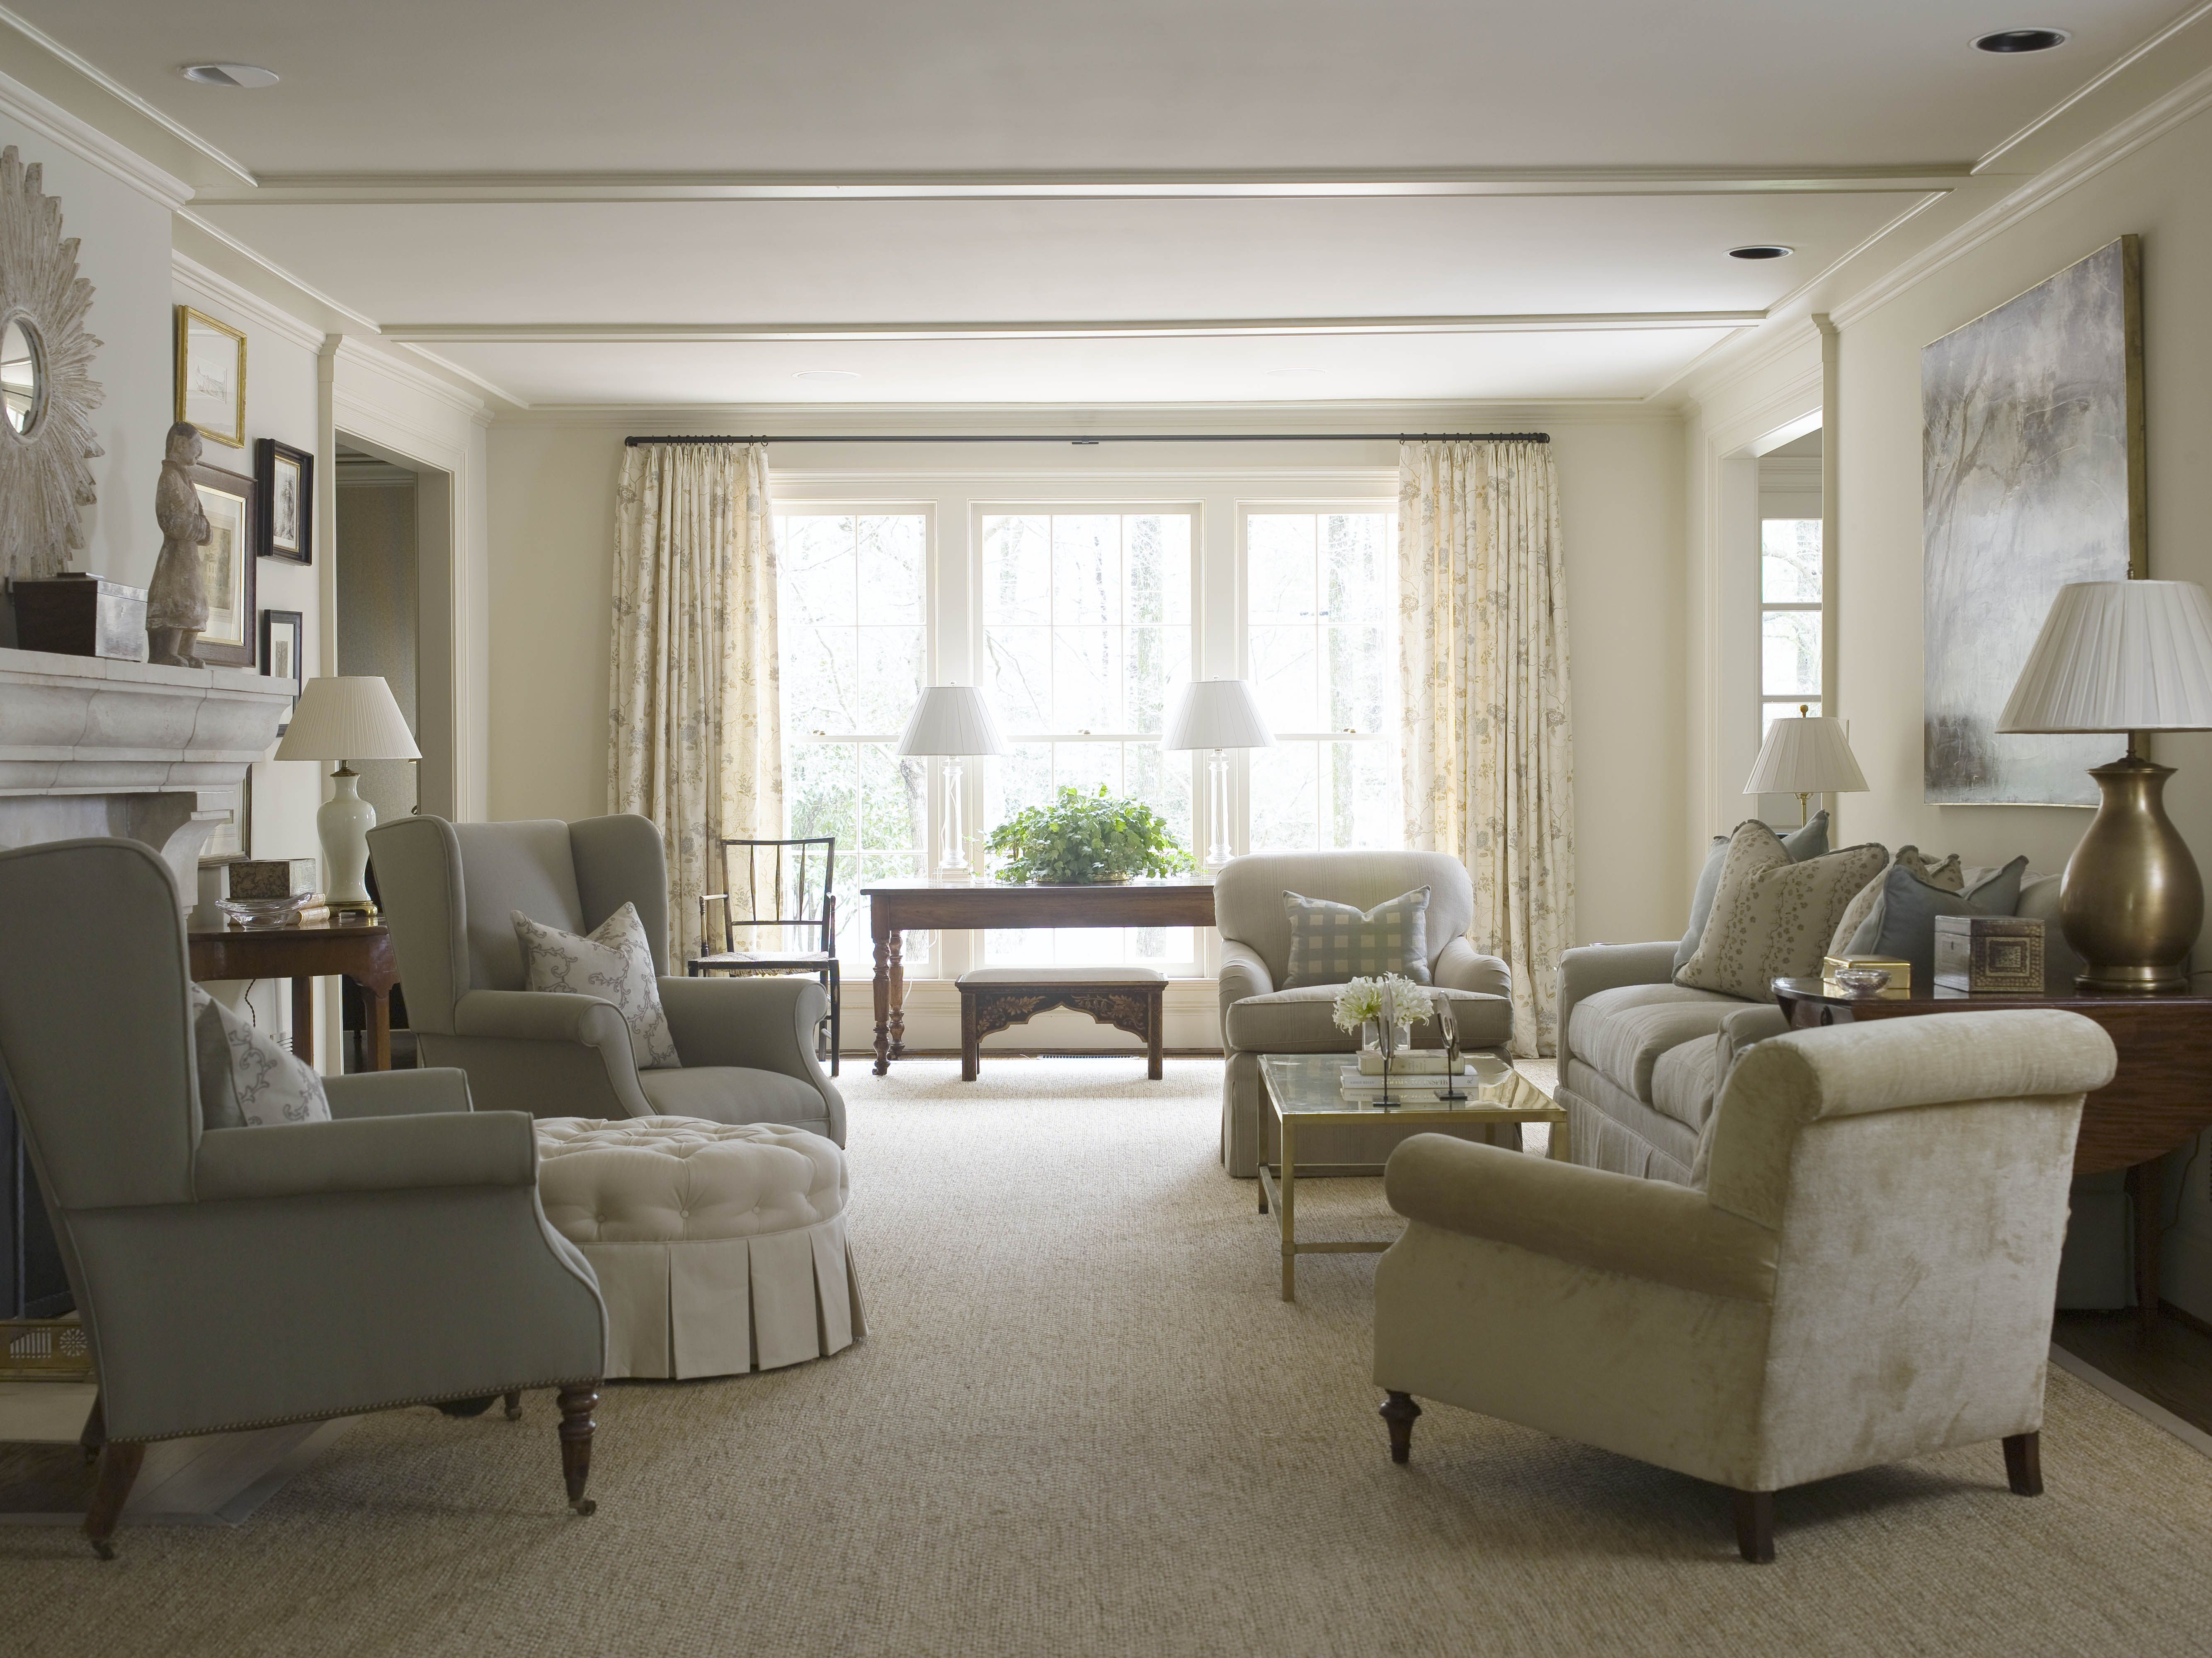 Make Ceiling Look Taller With Moldings  Just Removed Popcorn Amusing No Furniture Living Room 2018